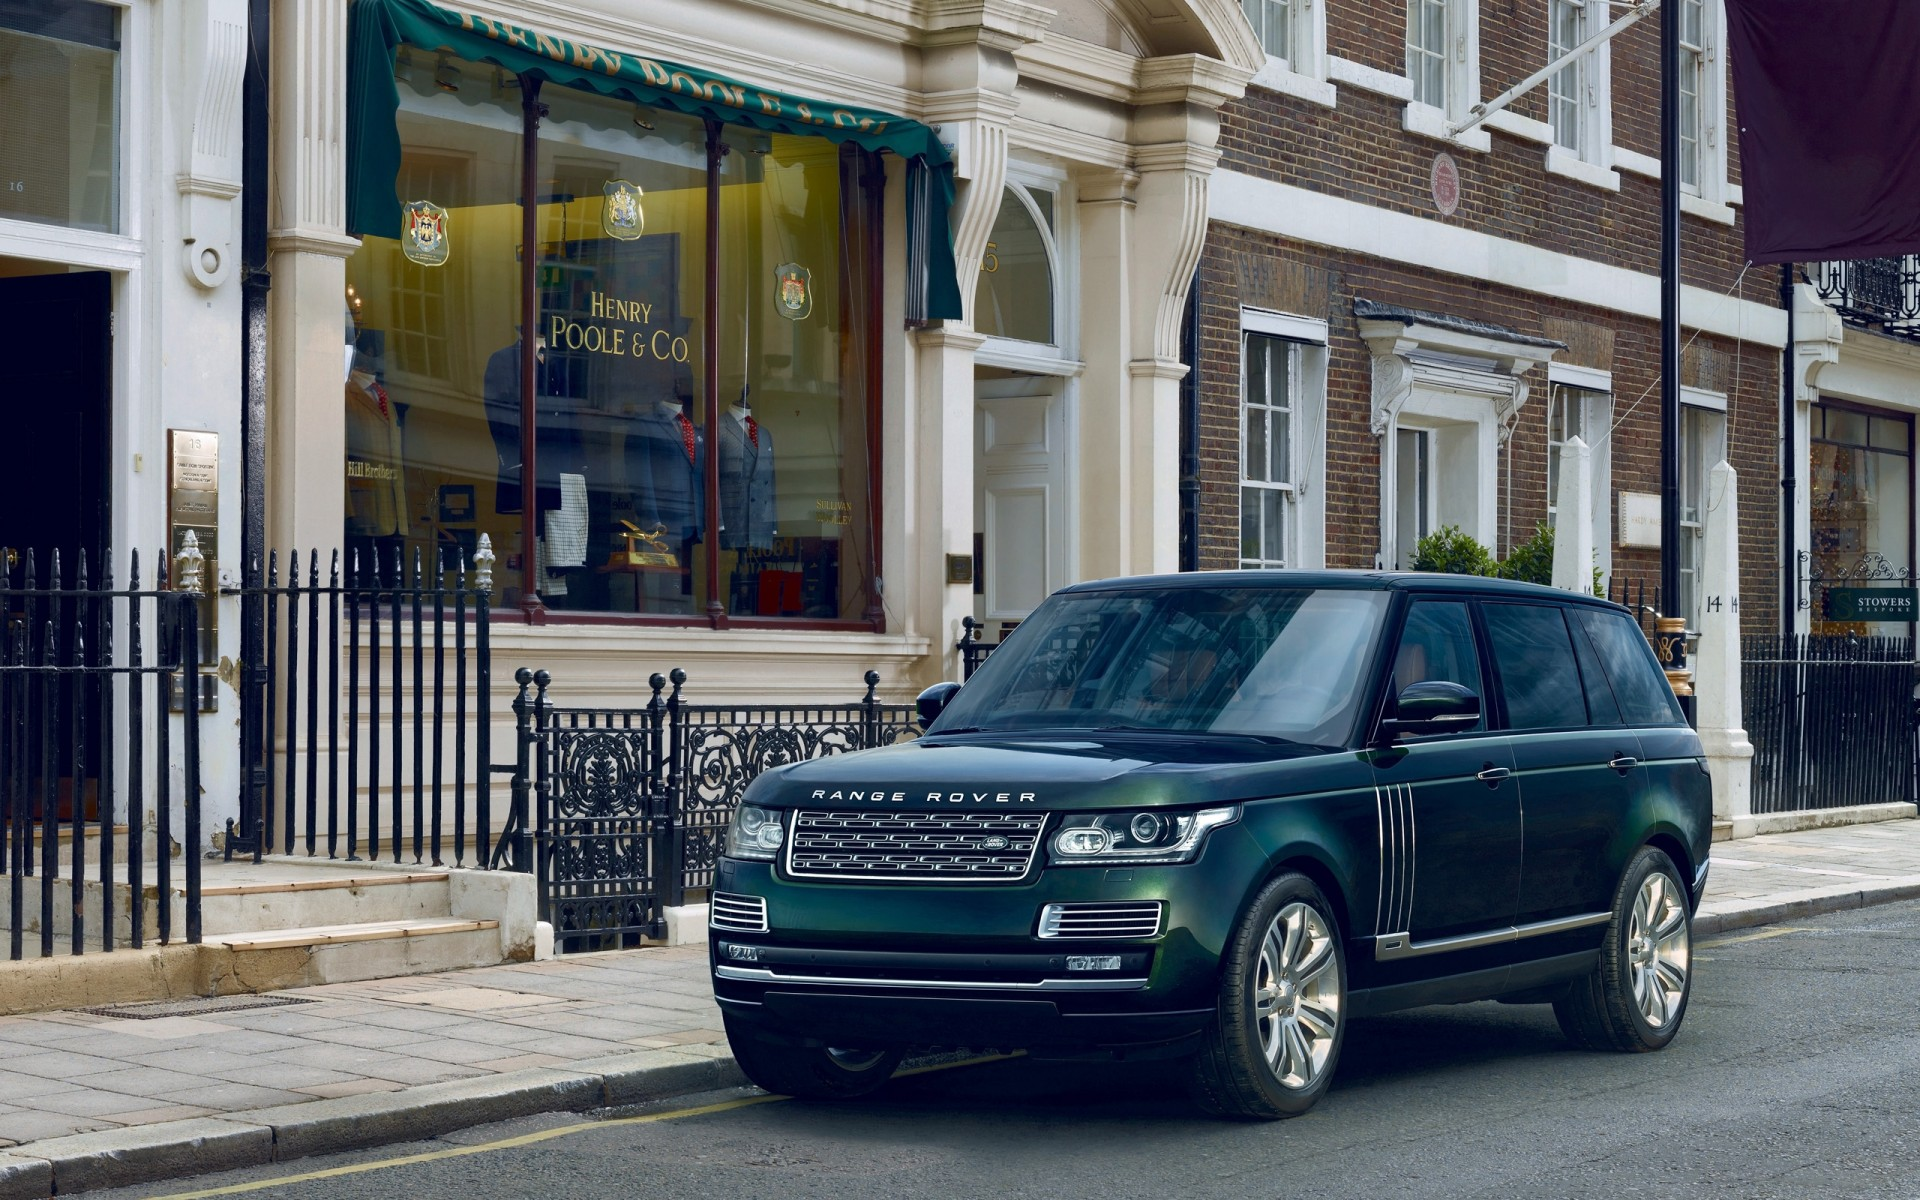 2015 holland and holland range rover wallpaper hd car wallpapers id 4936. Black Bedroom Furniture Sets. Home Design Ideas